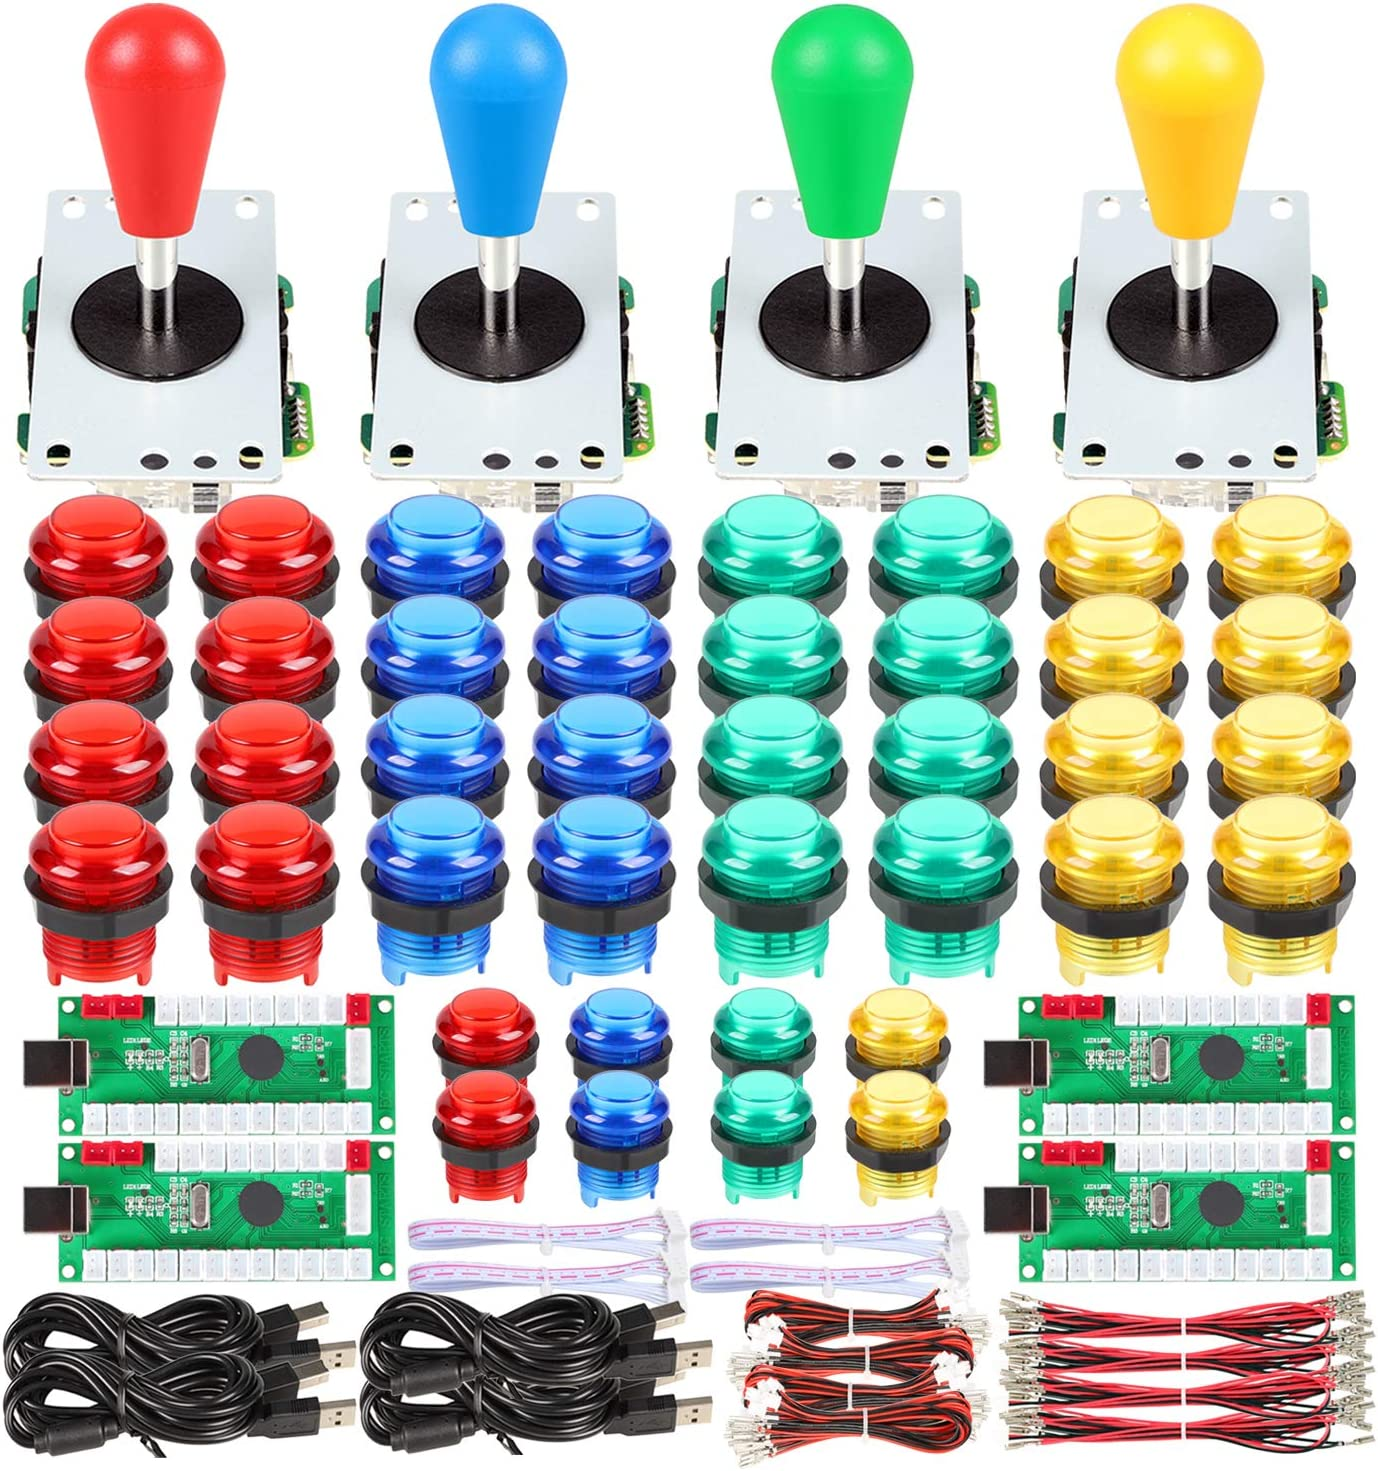 Fosiya 4 Player LED Arcade Kit Ellipse Oval Style Joystick USB Encoder to PC Games DIY Controllers Bat Joystick 4 Colors LED Arcade Buttons for All Windows PC MAME Raspberry Pi